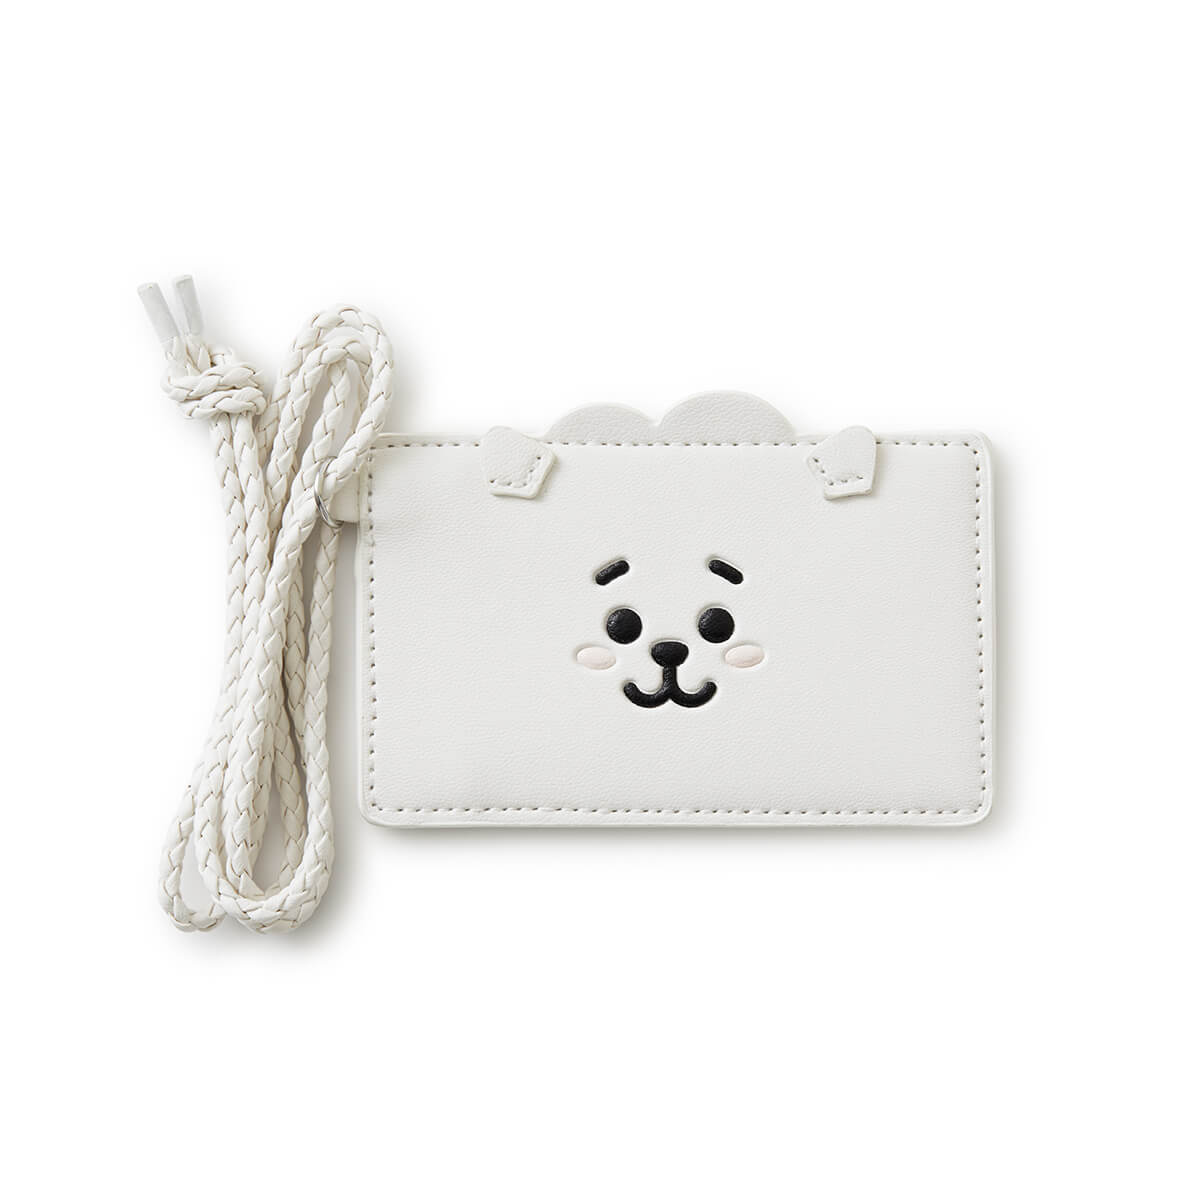 BT21 RJ 2-Pocket Neck Strap Wallet White